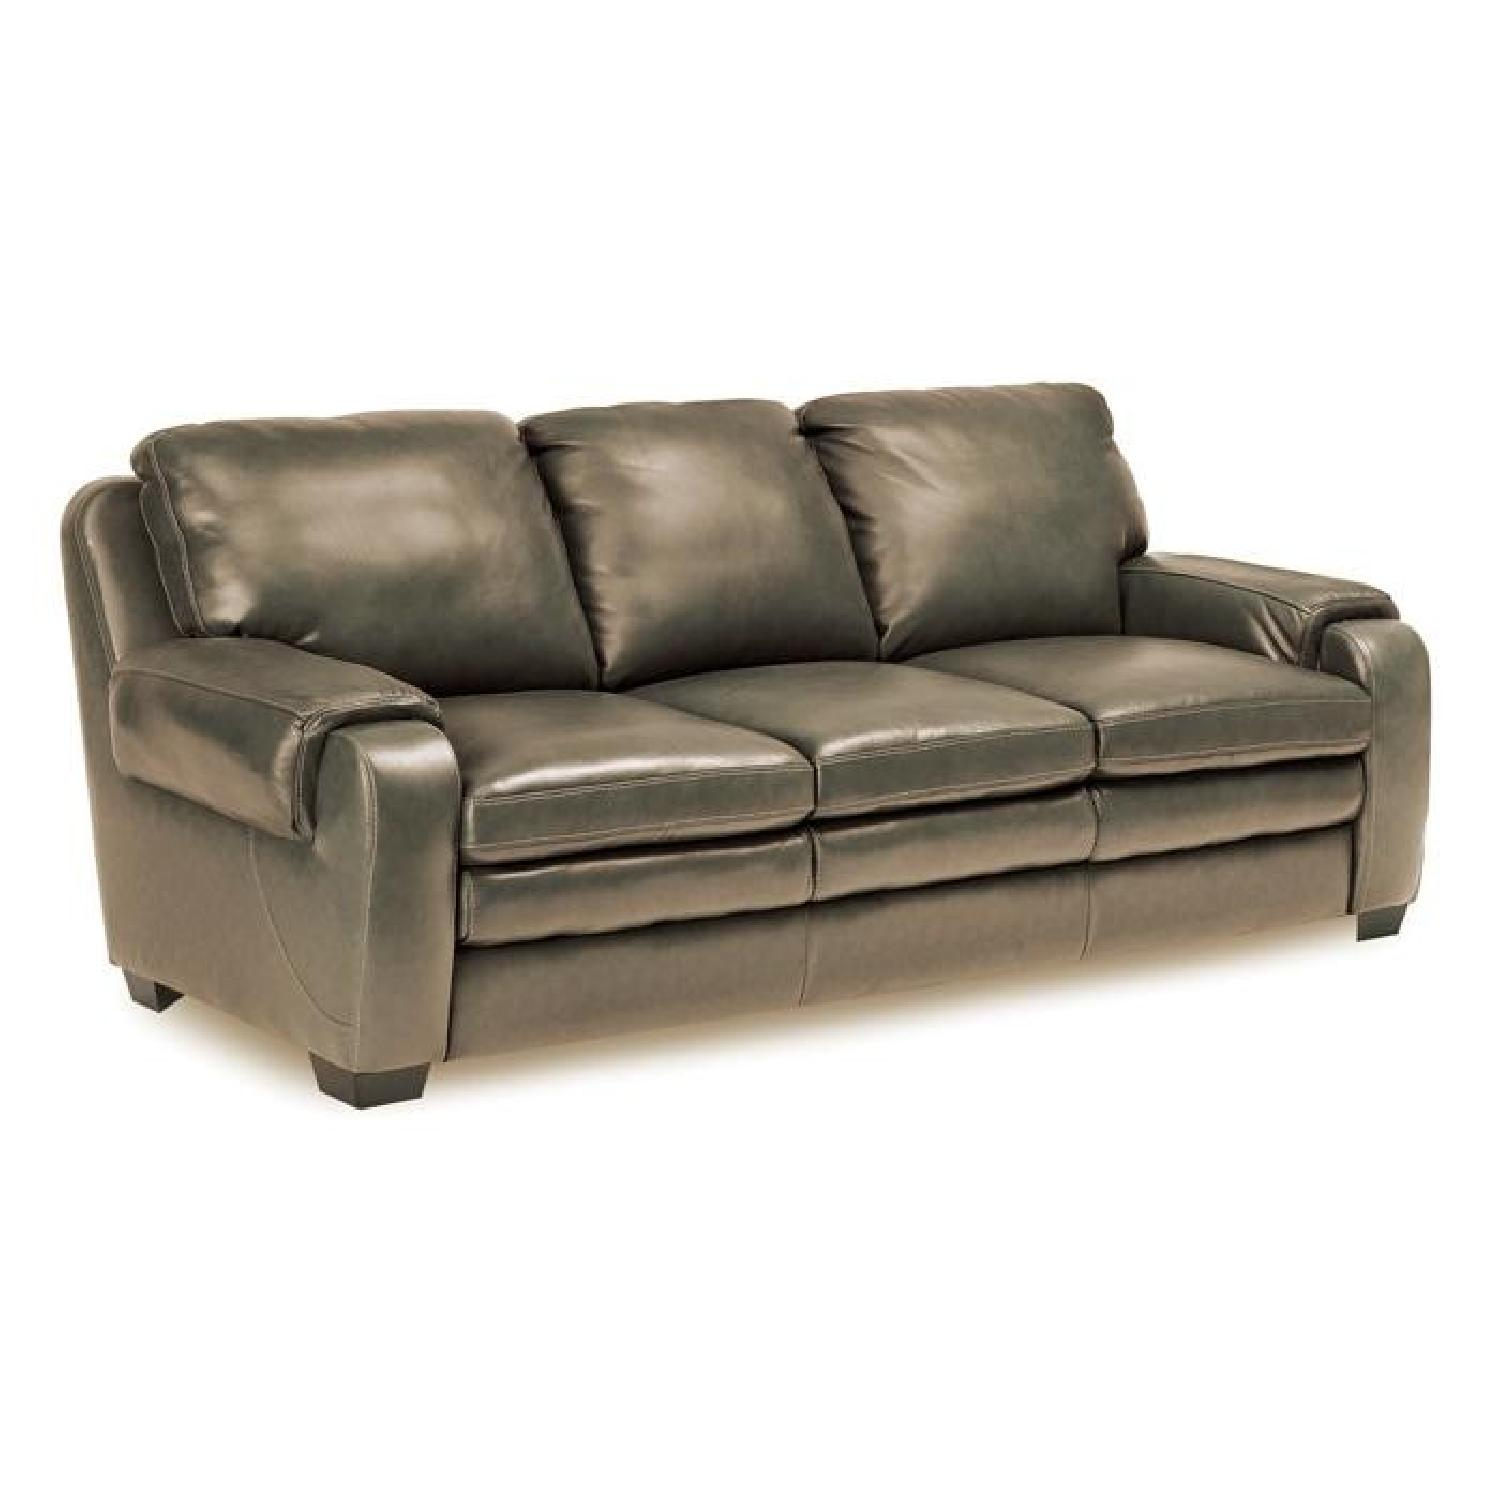 Jennifer Convertibles Matera Leather Match Sofa - AptDeco